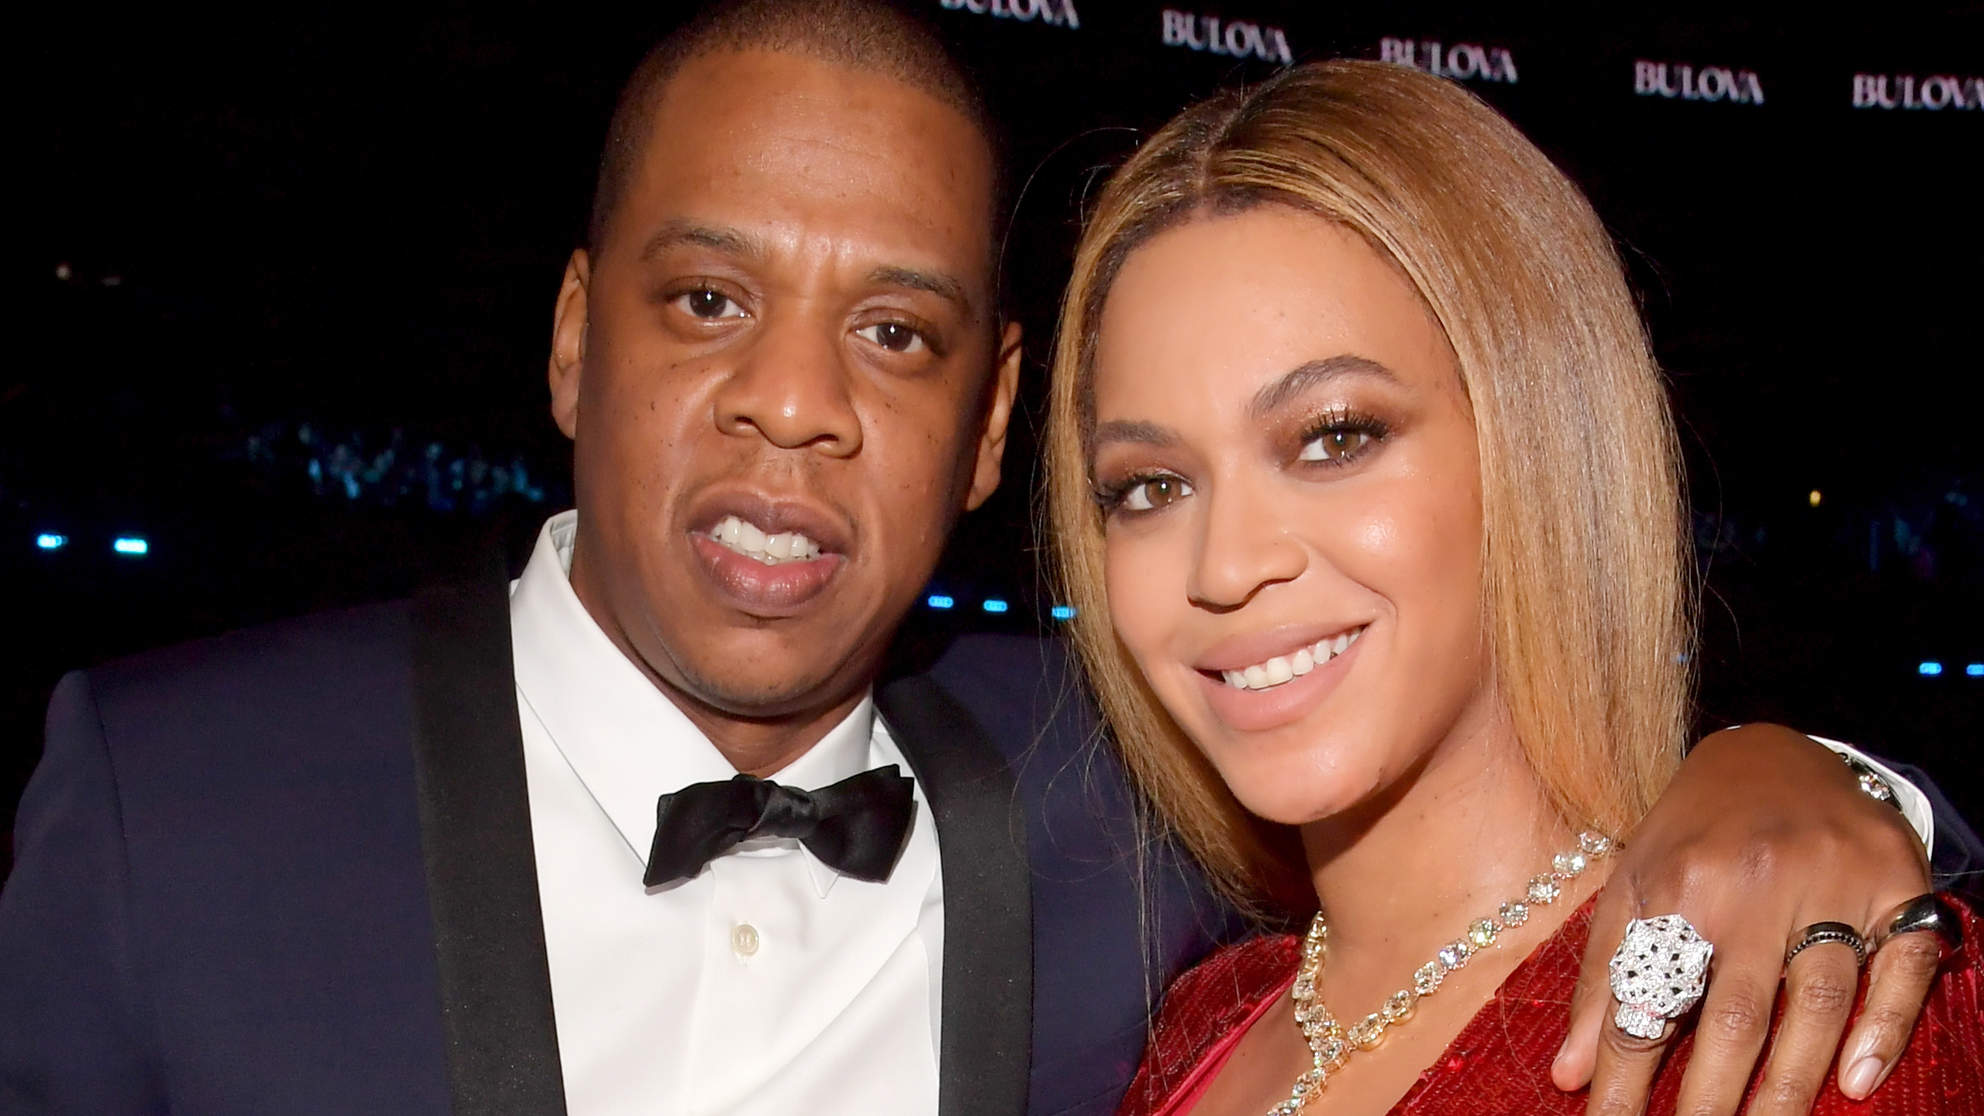 Jay-Z Opens Up About Fighting to Save His Marriage to Beyoncé After Infidelity